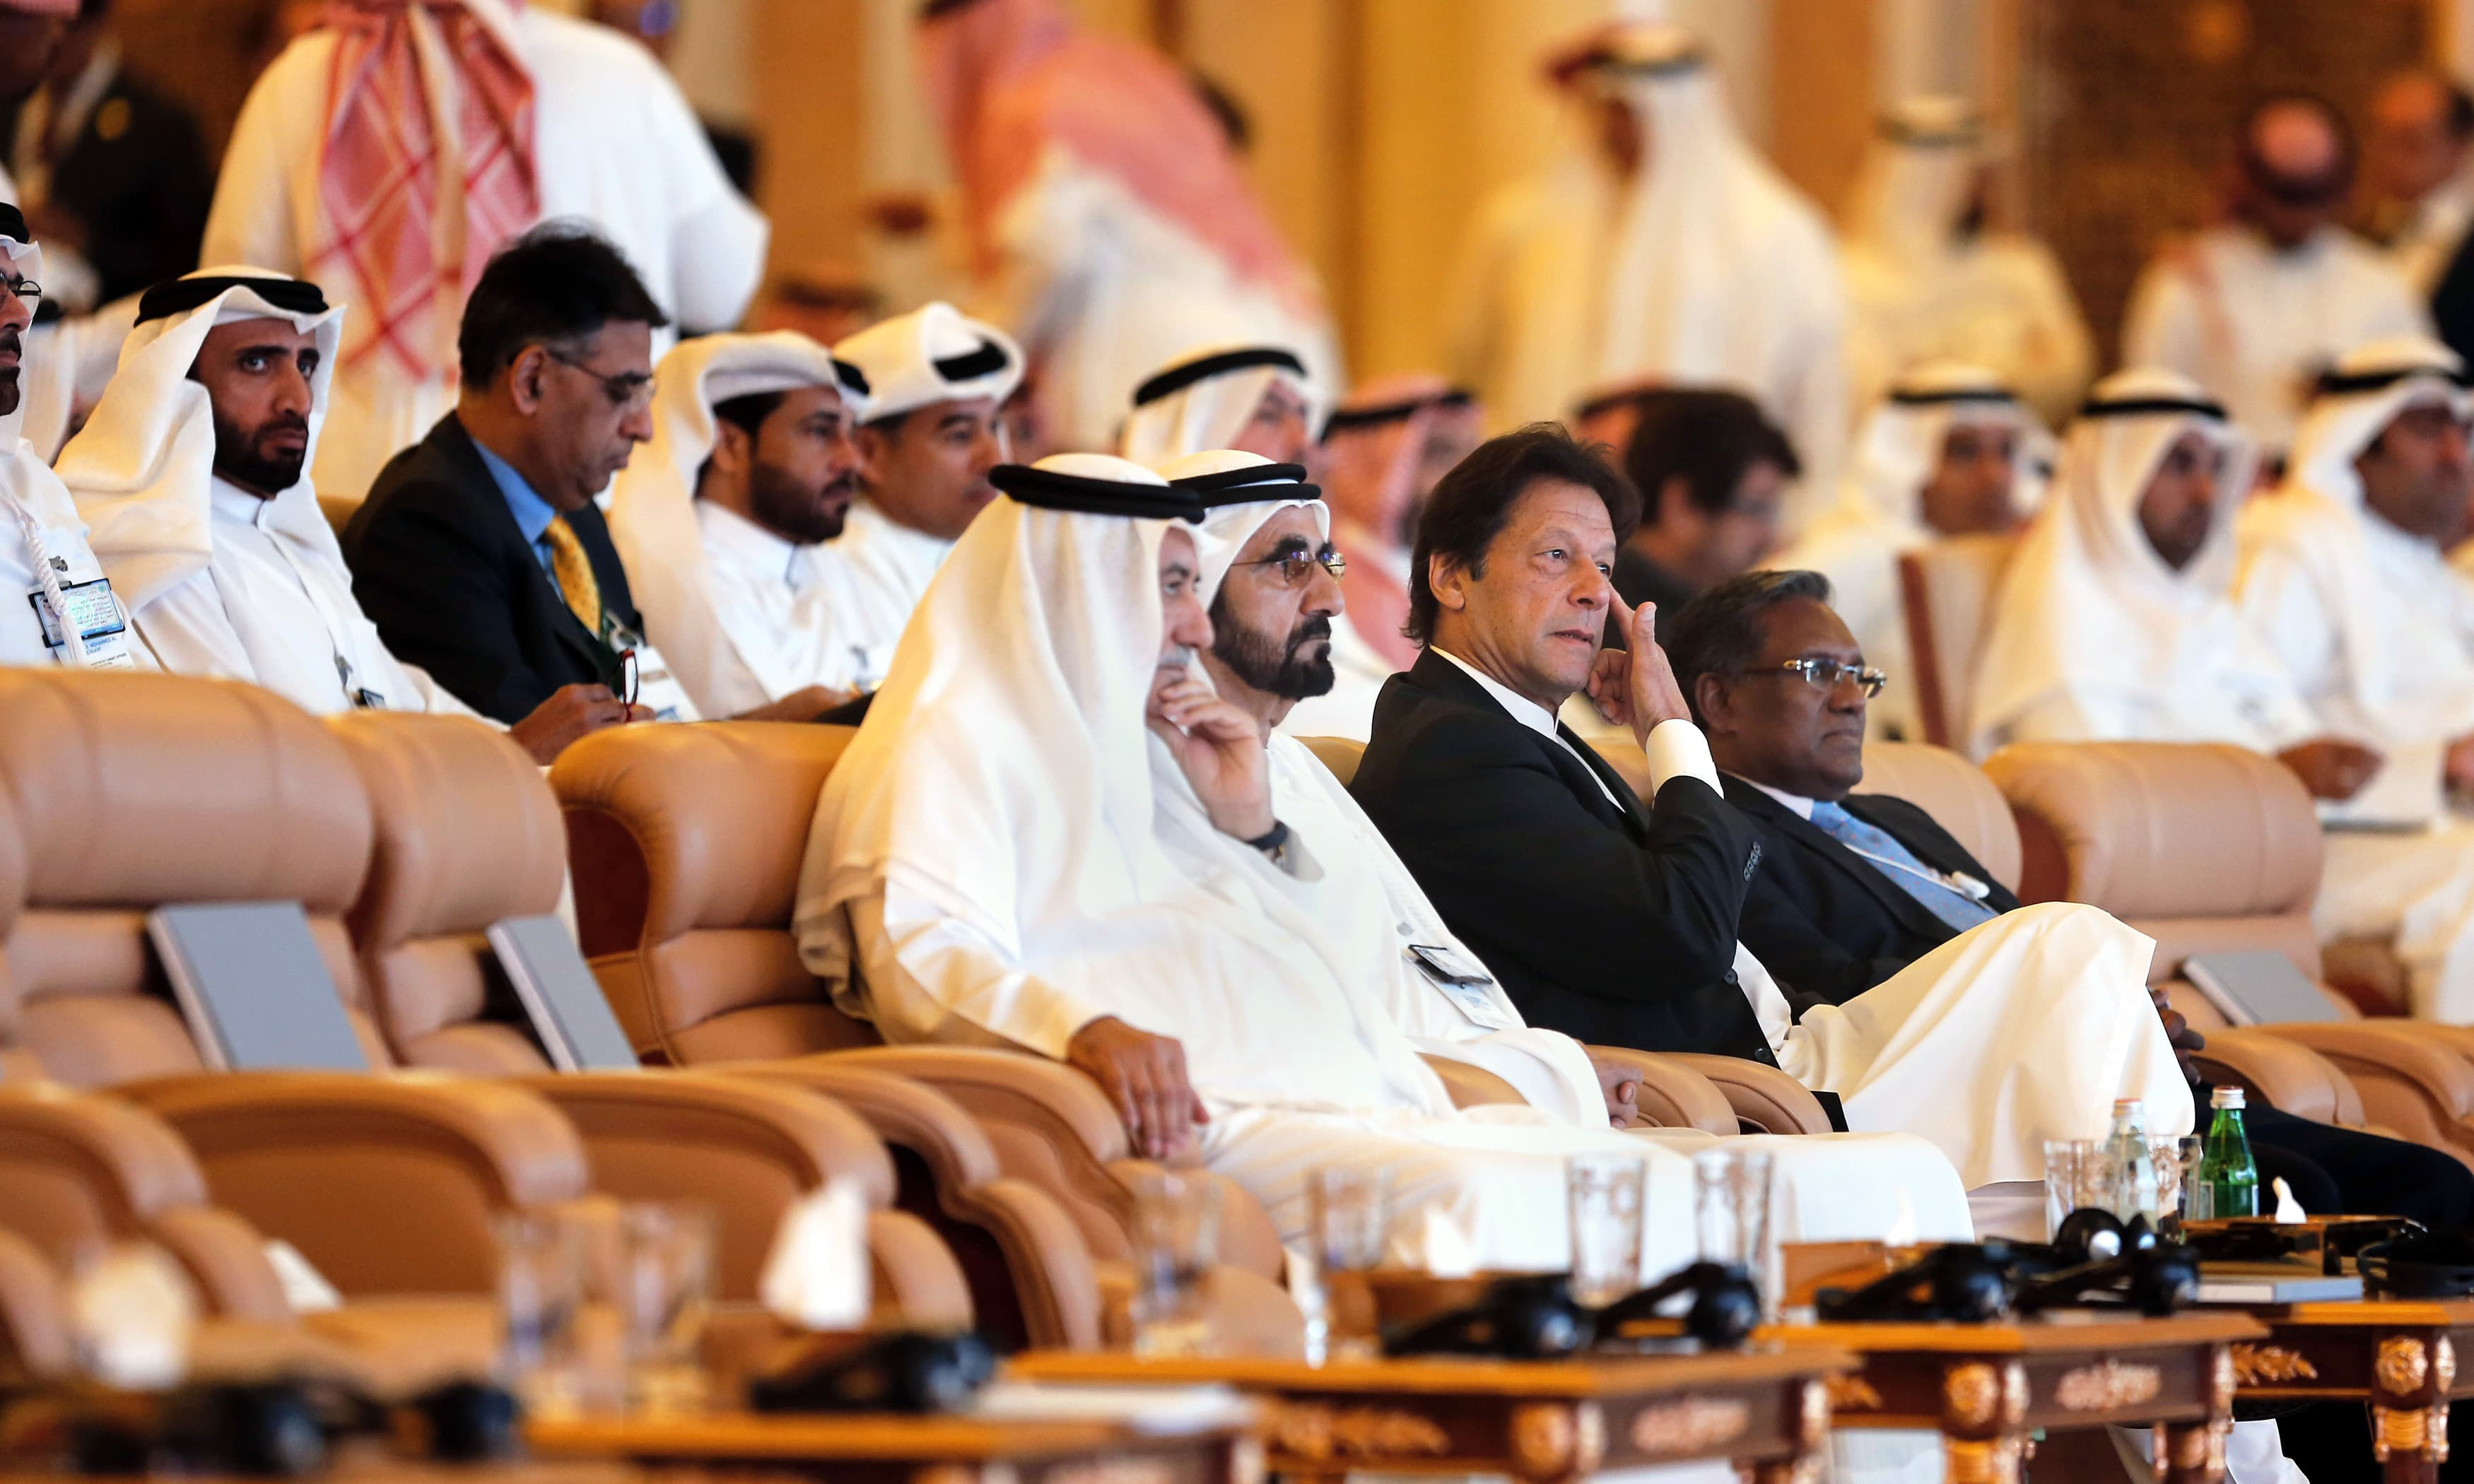 PM Khan sits next to UAE PM Sheikh Mohammad bin Rashed as they attend the opening ceremony. —AP